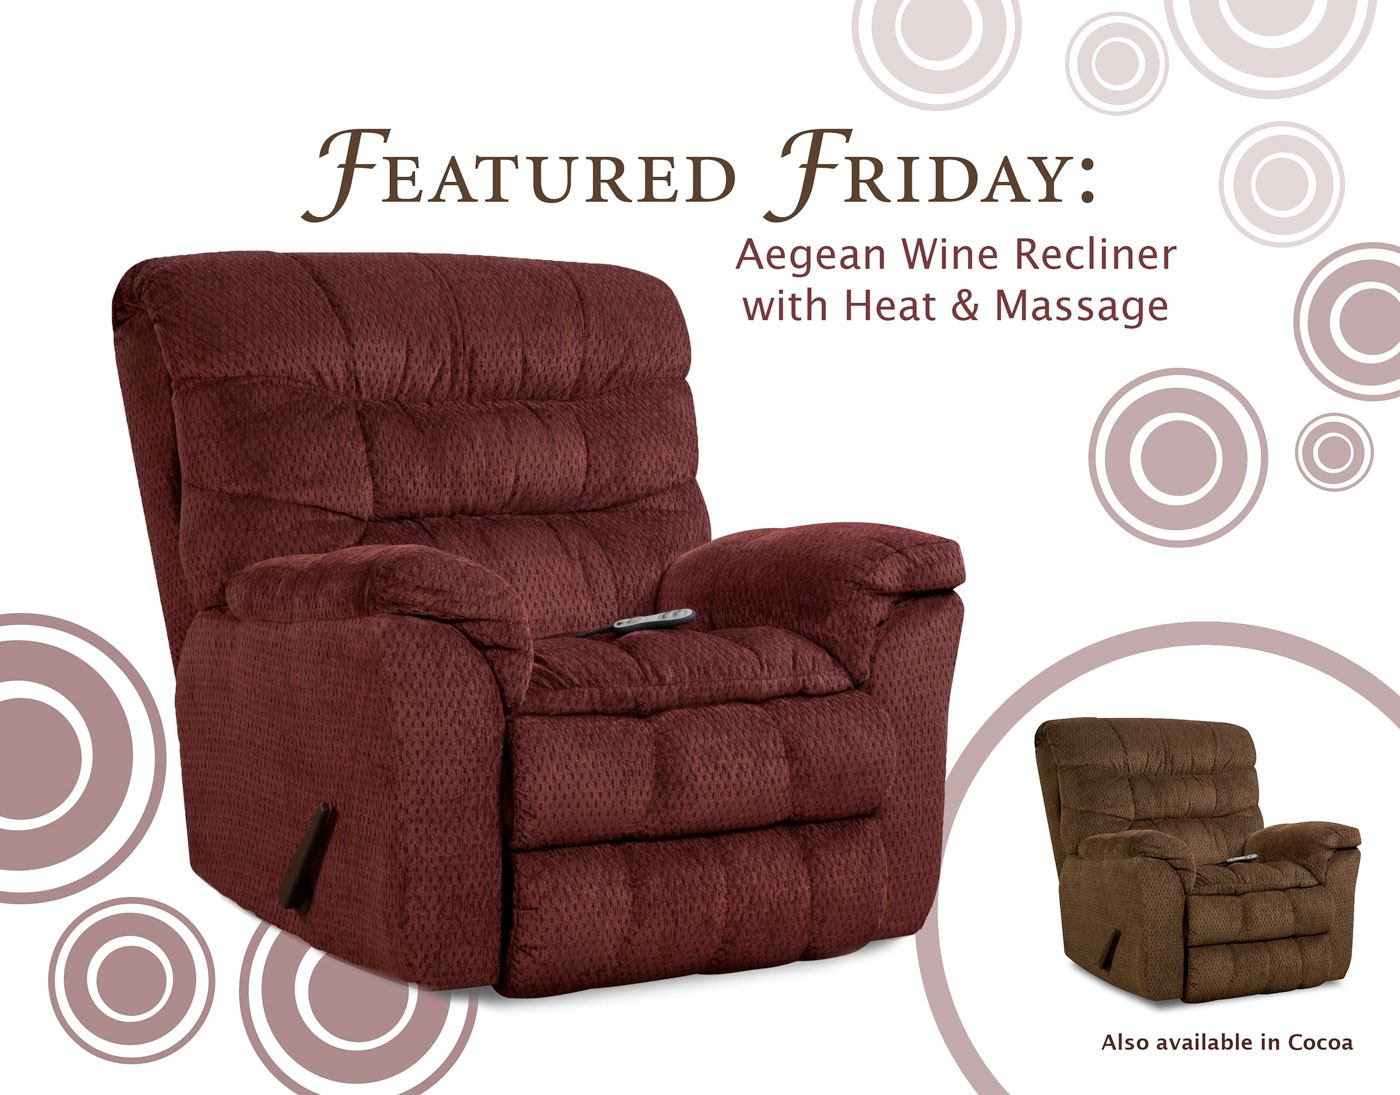 Featured Friday: Aegean Wine Recliner with Heat & Massage